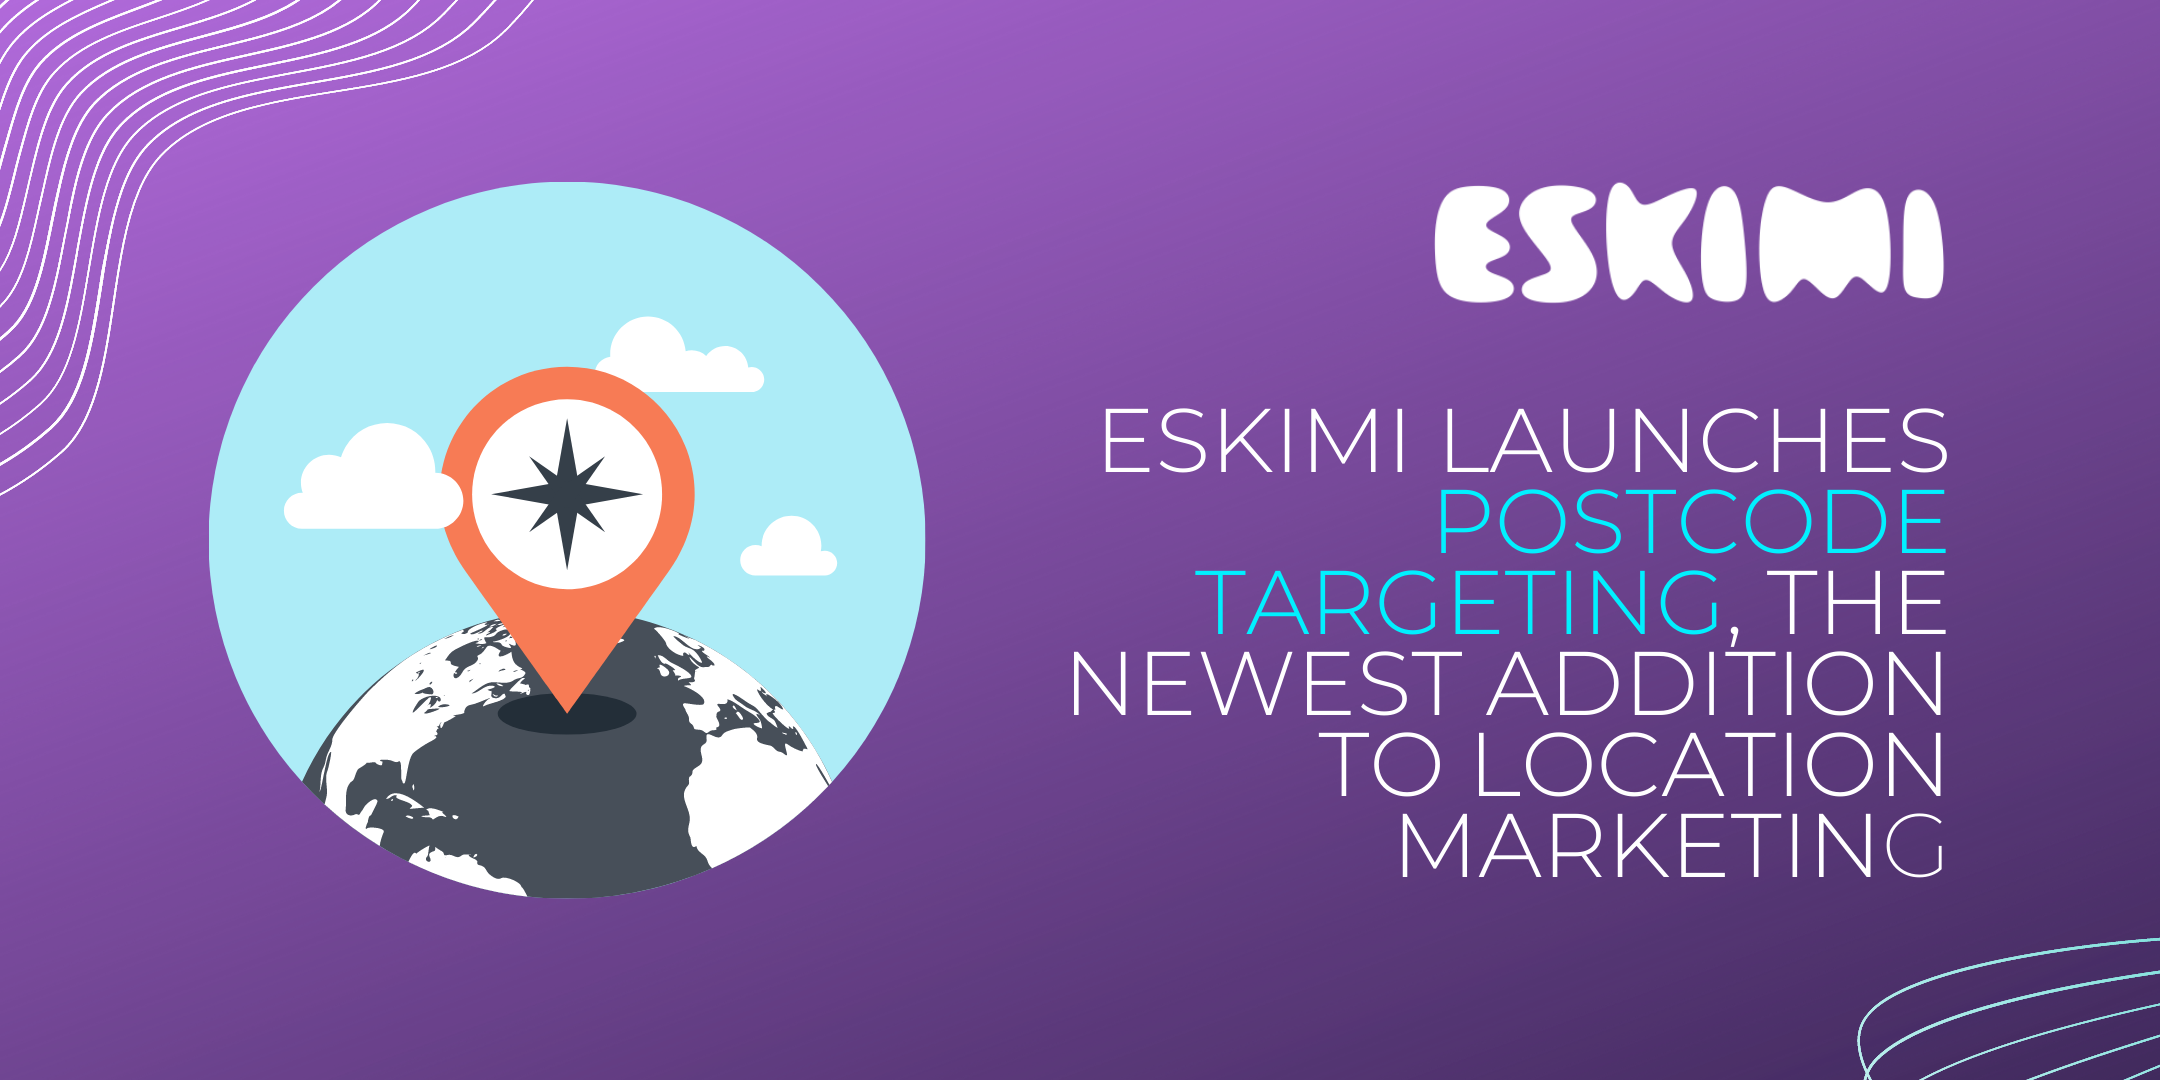 Eskimi Launches Postcode Targeting, the Newest Addition to Location Marketing.